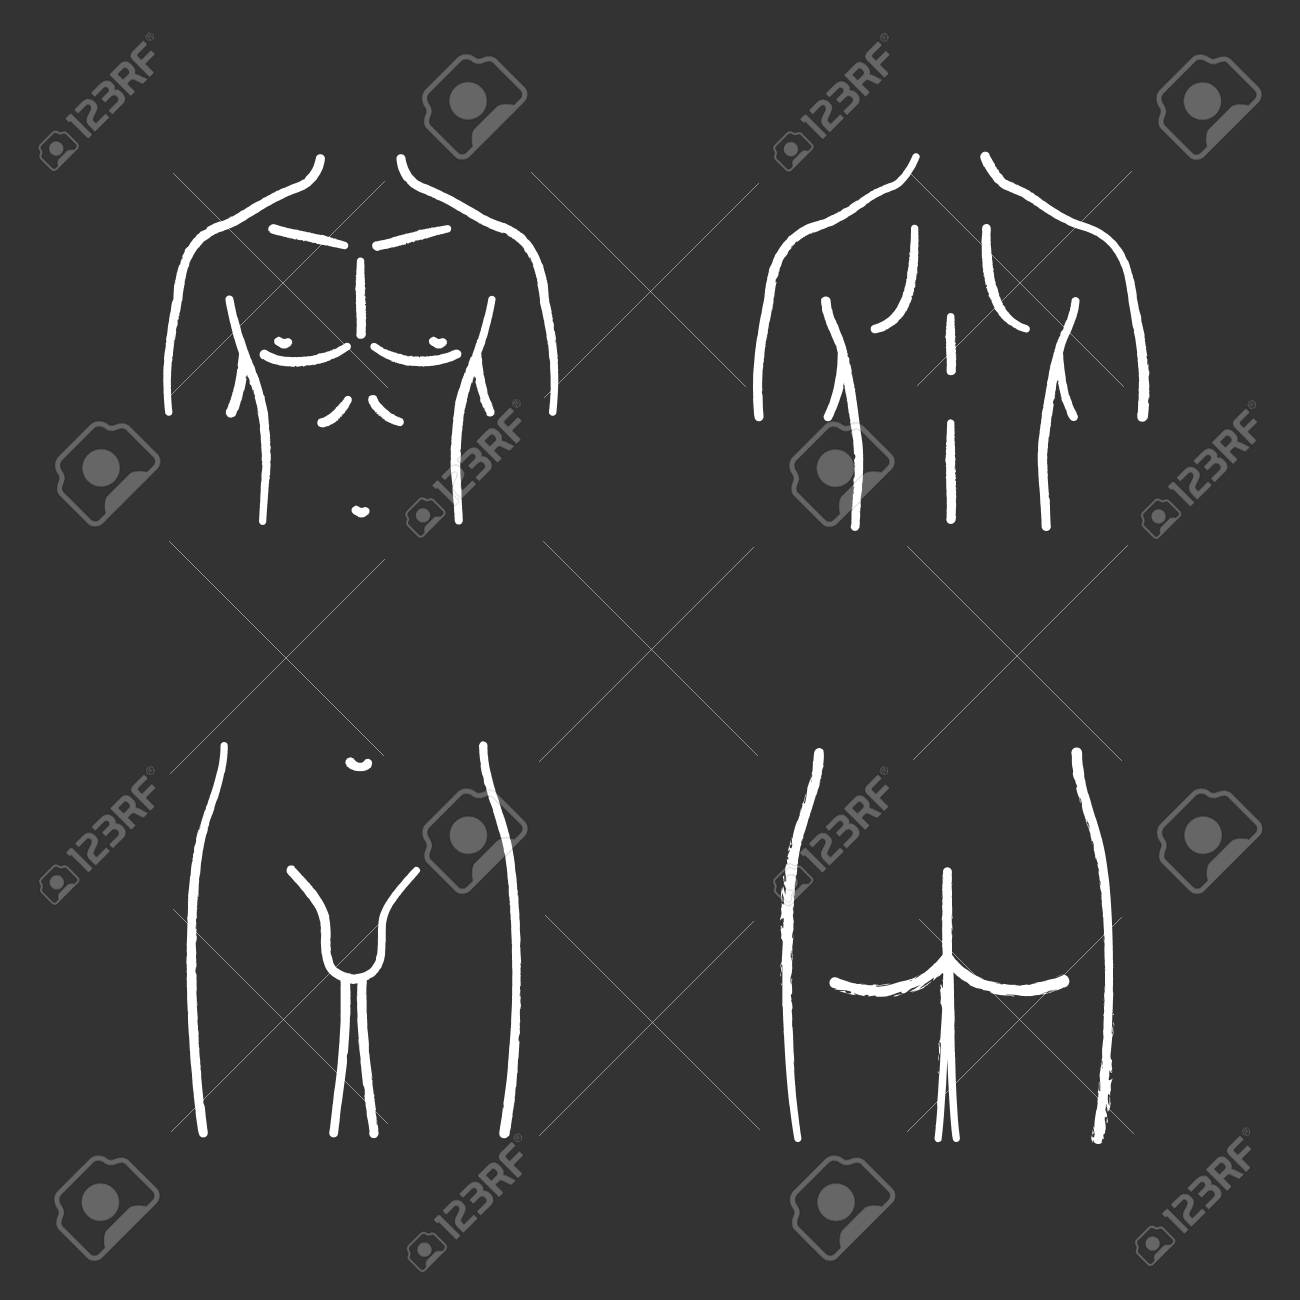 hight resolution of male body parts chalk icons set muscular chest back groin butt